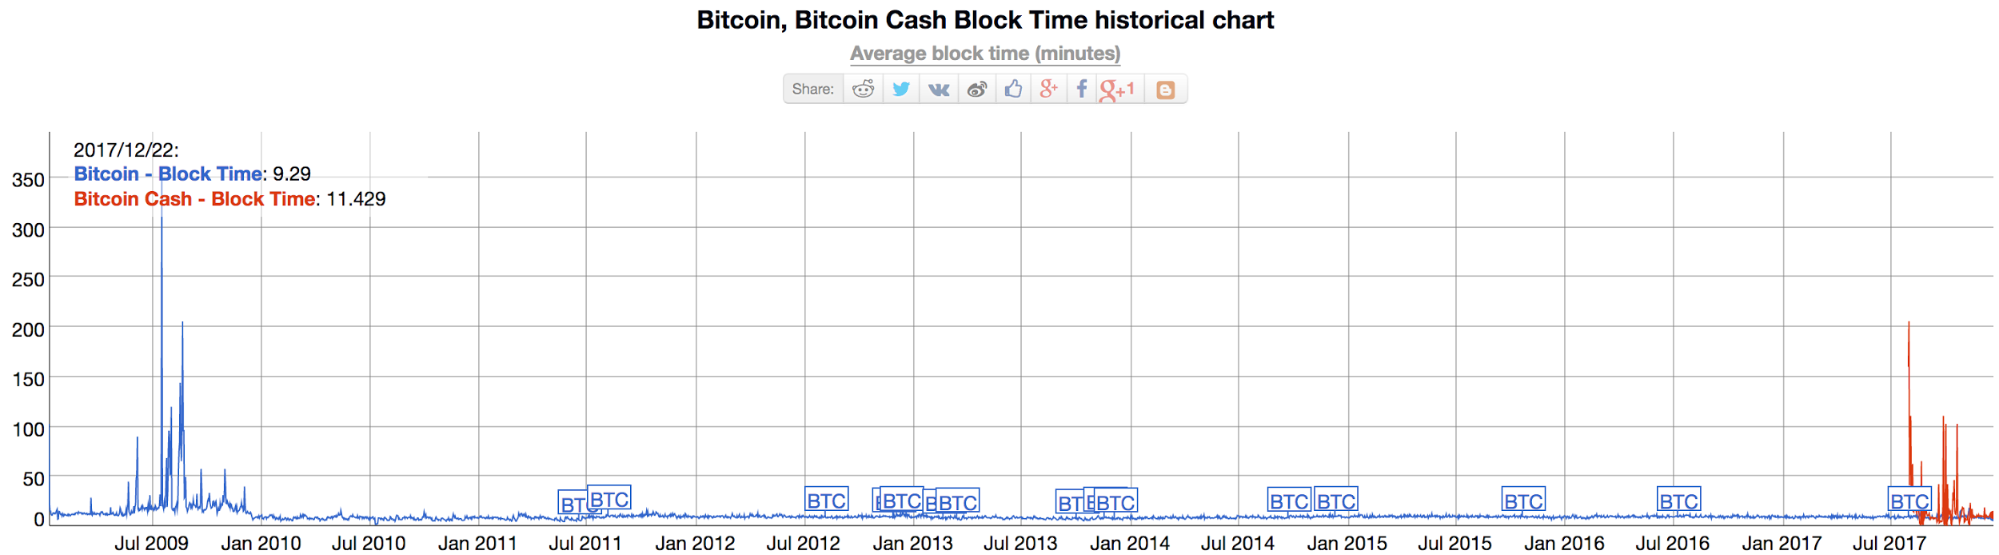 Bitcoin Cash Block Time